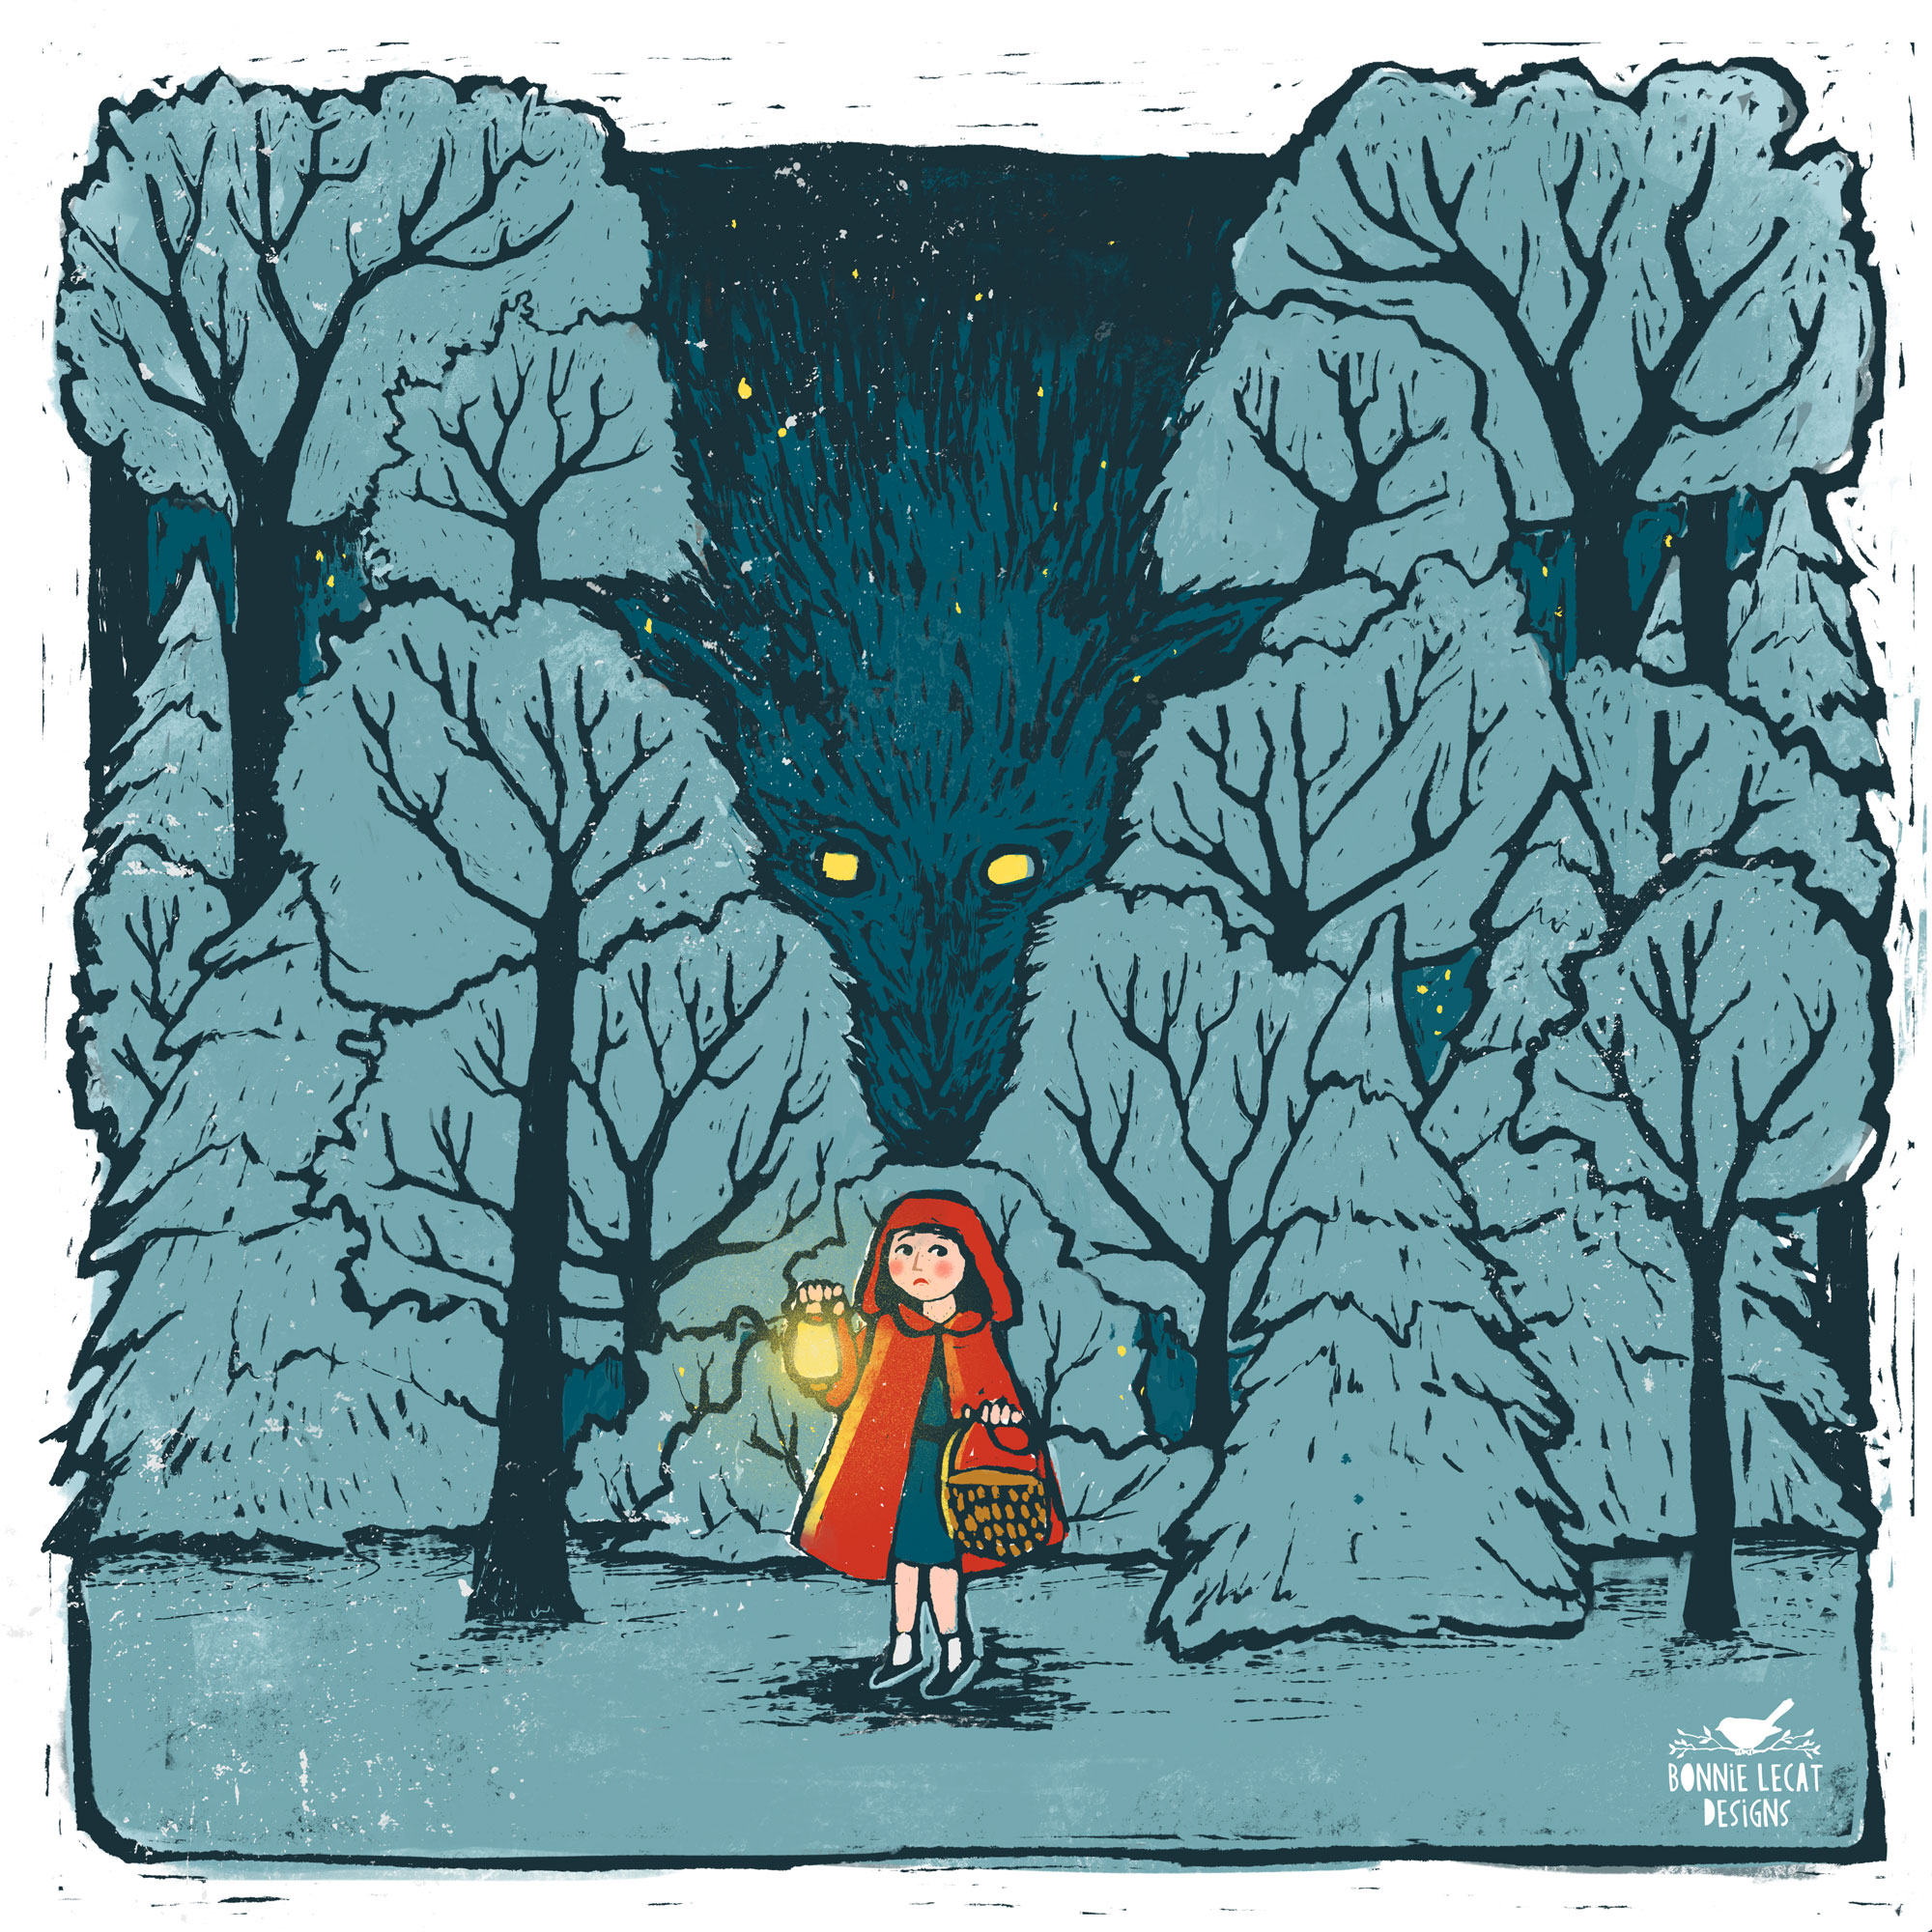 Little Red Riding Hood Illustration by Bonnie Lecat